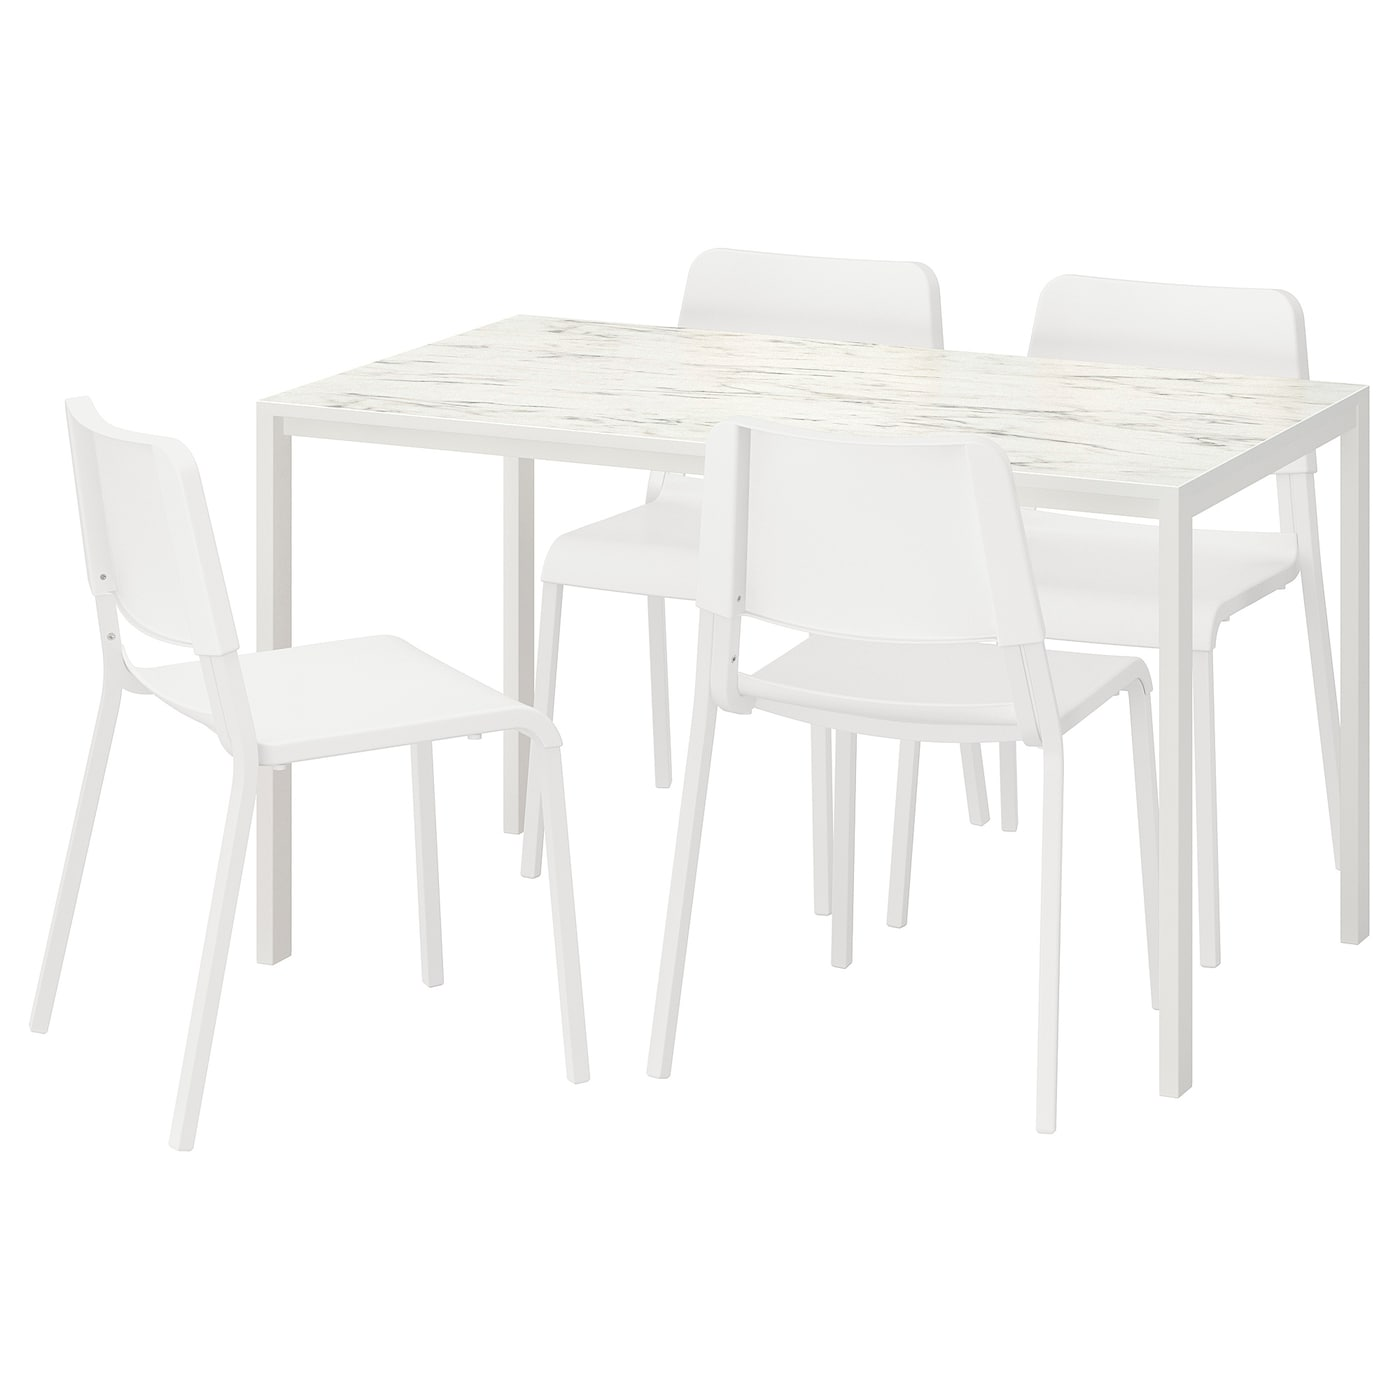 IKEA MELLTORP/TEODORES table and 4 chairs Seats 4.